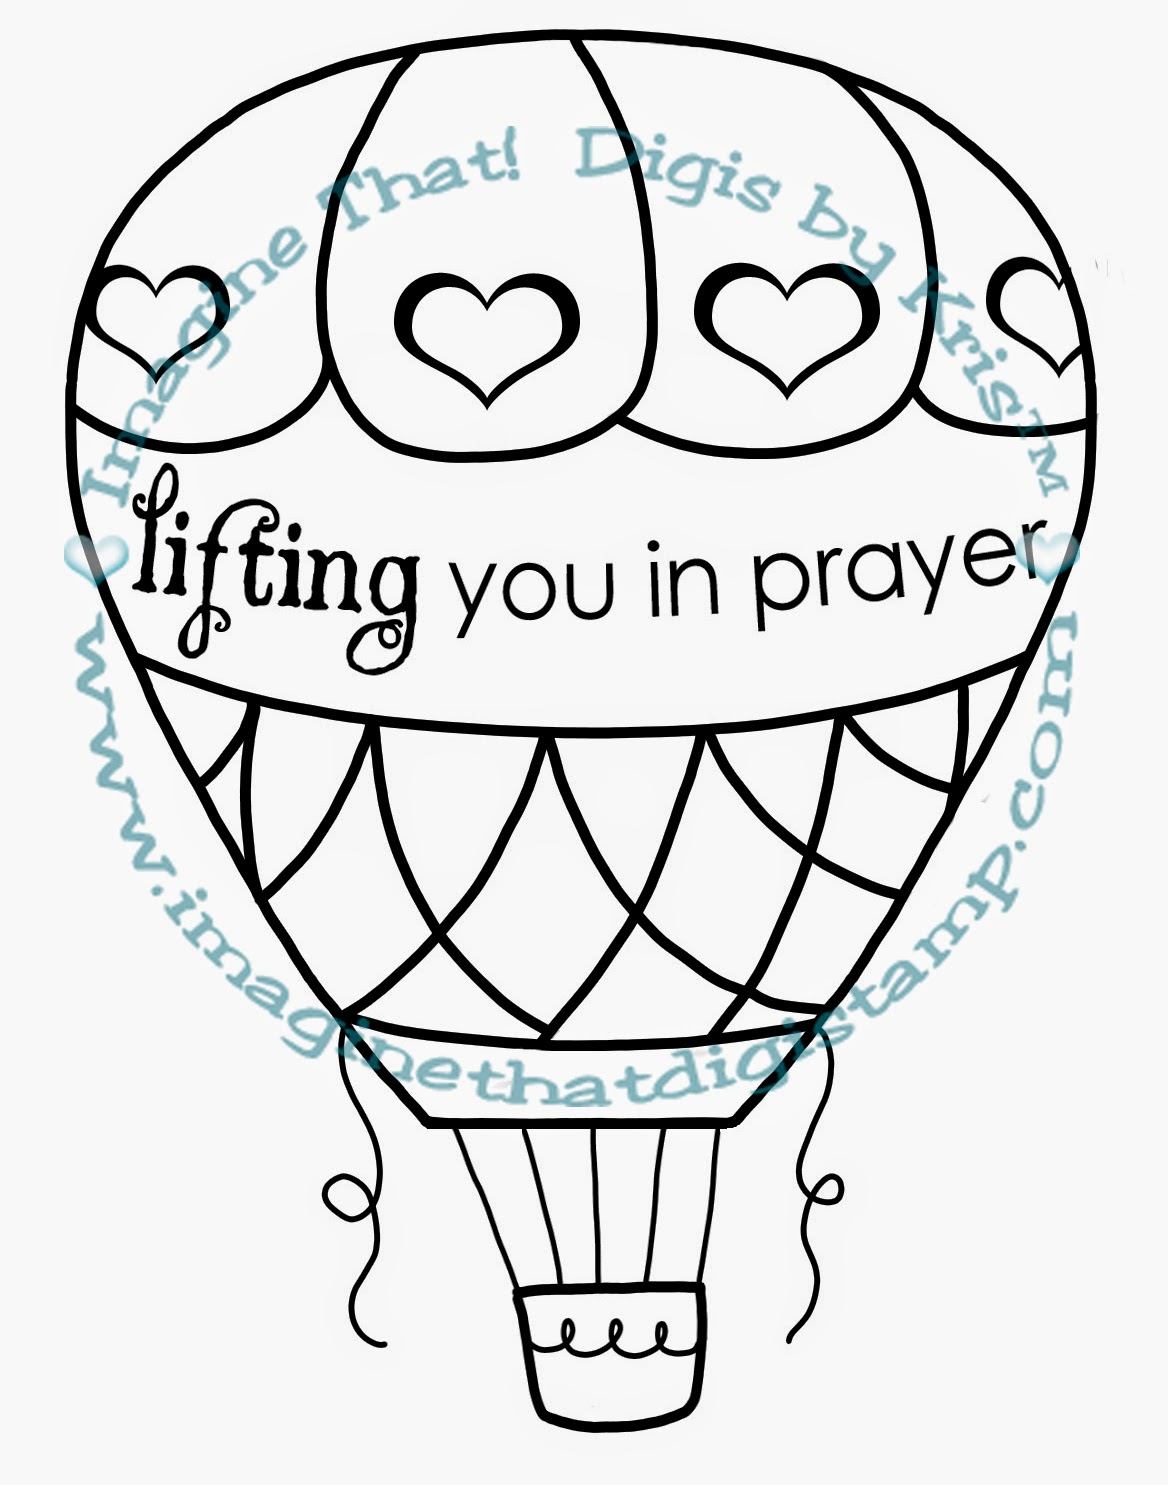 http://4.bp.blogspot.com/-QJloxi6MCdA/U0XWq4IRFpI/AAAAAAAAVQA/TQE1LuvF1mc/s1600/Lifting+you+in+prayer+Balloon+-+Imagine+That+DBK.jpg